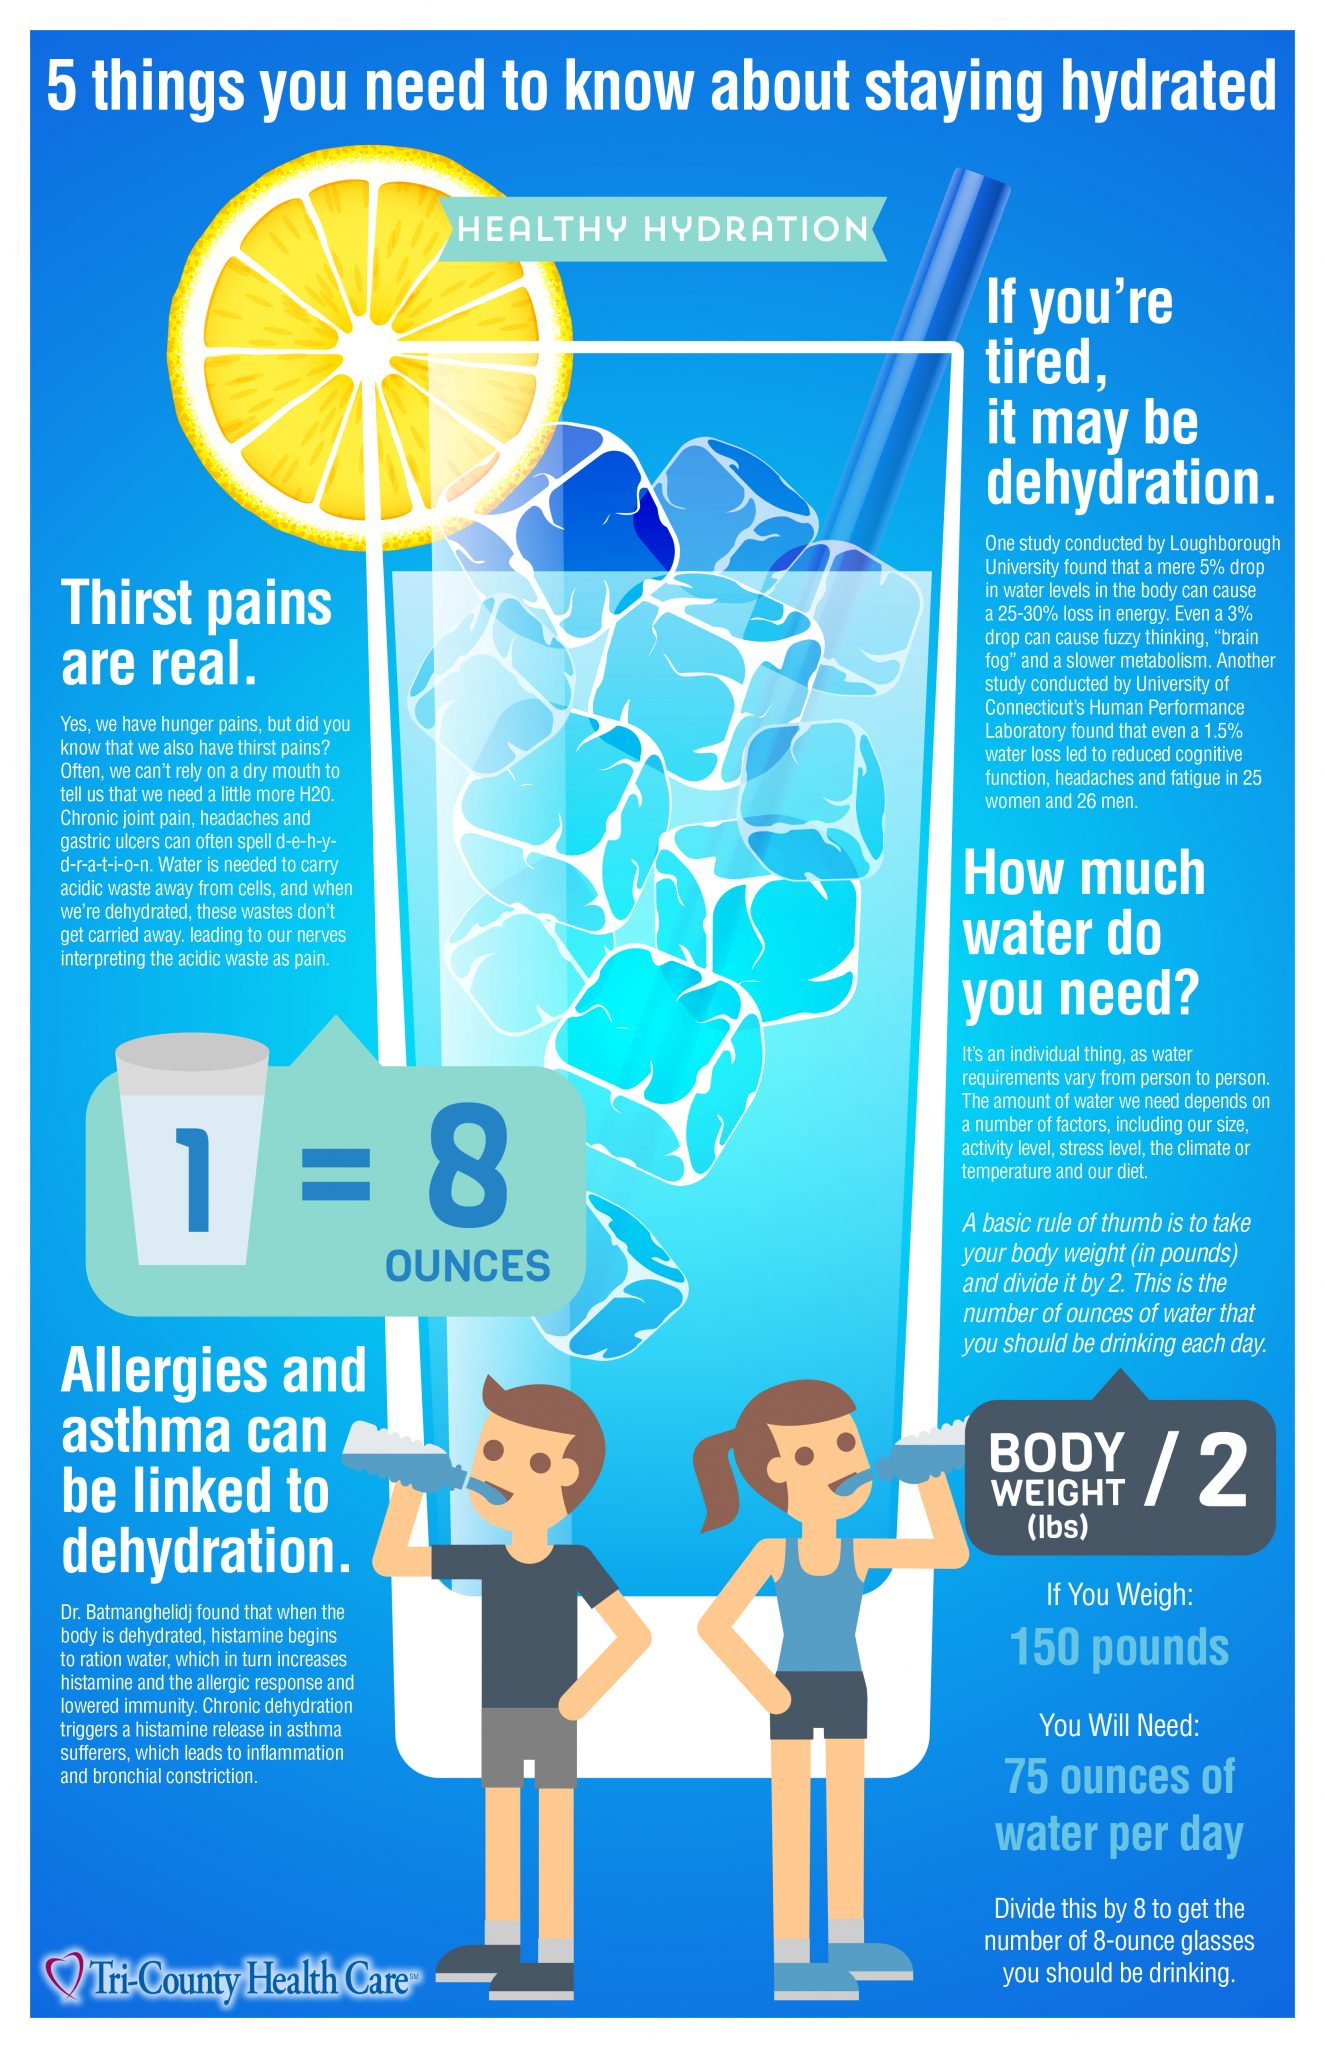 Healthy Hydration: Are you drinking enough water?